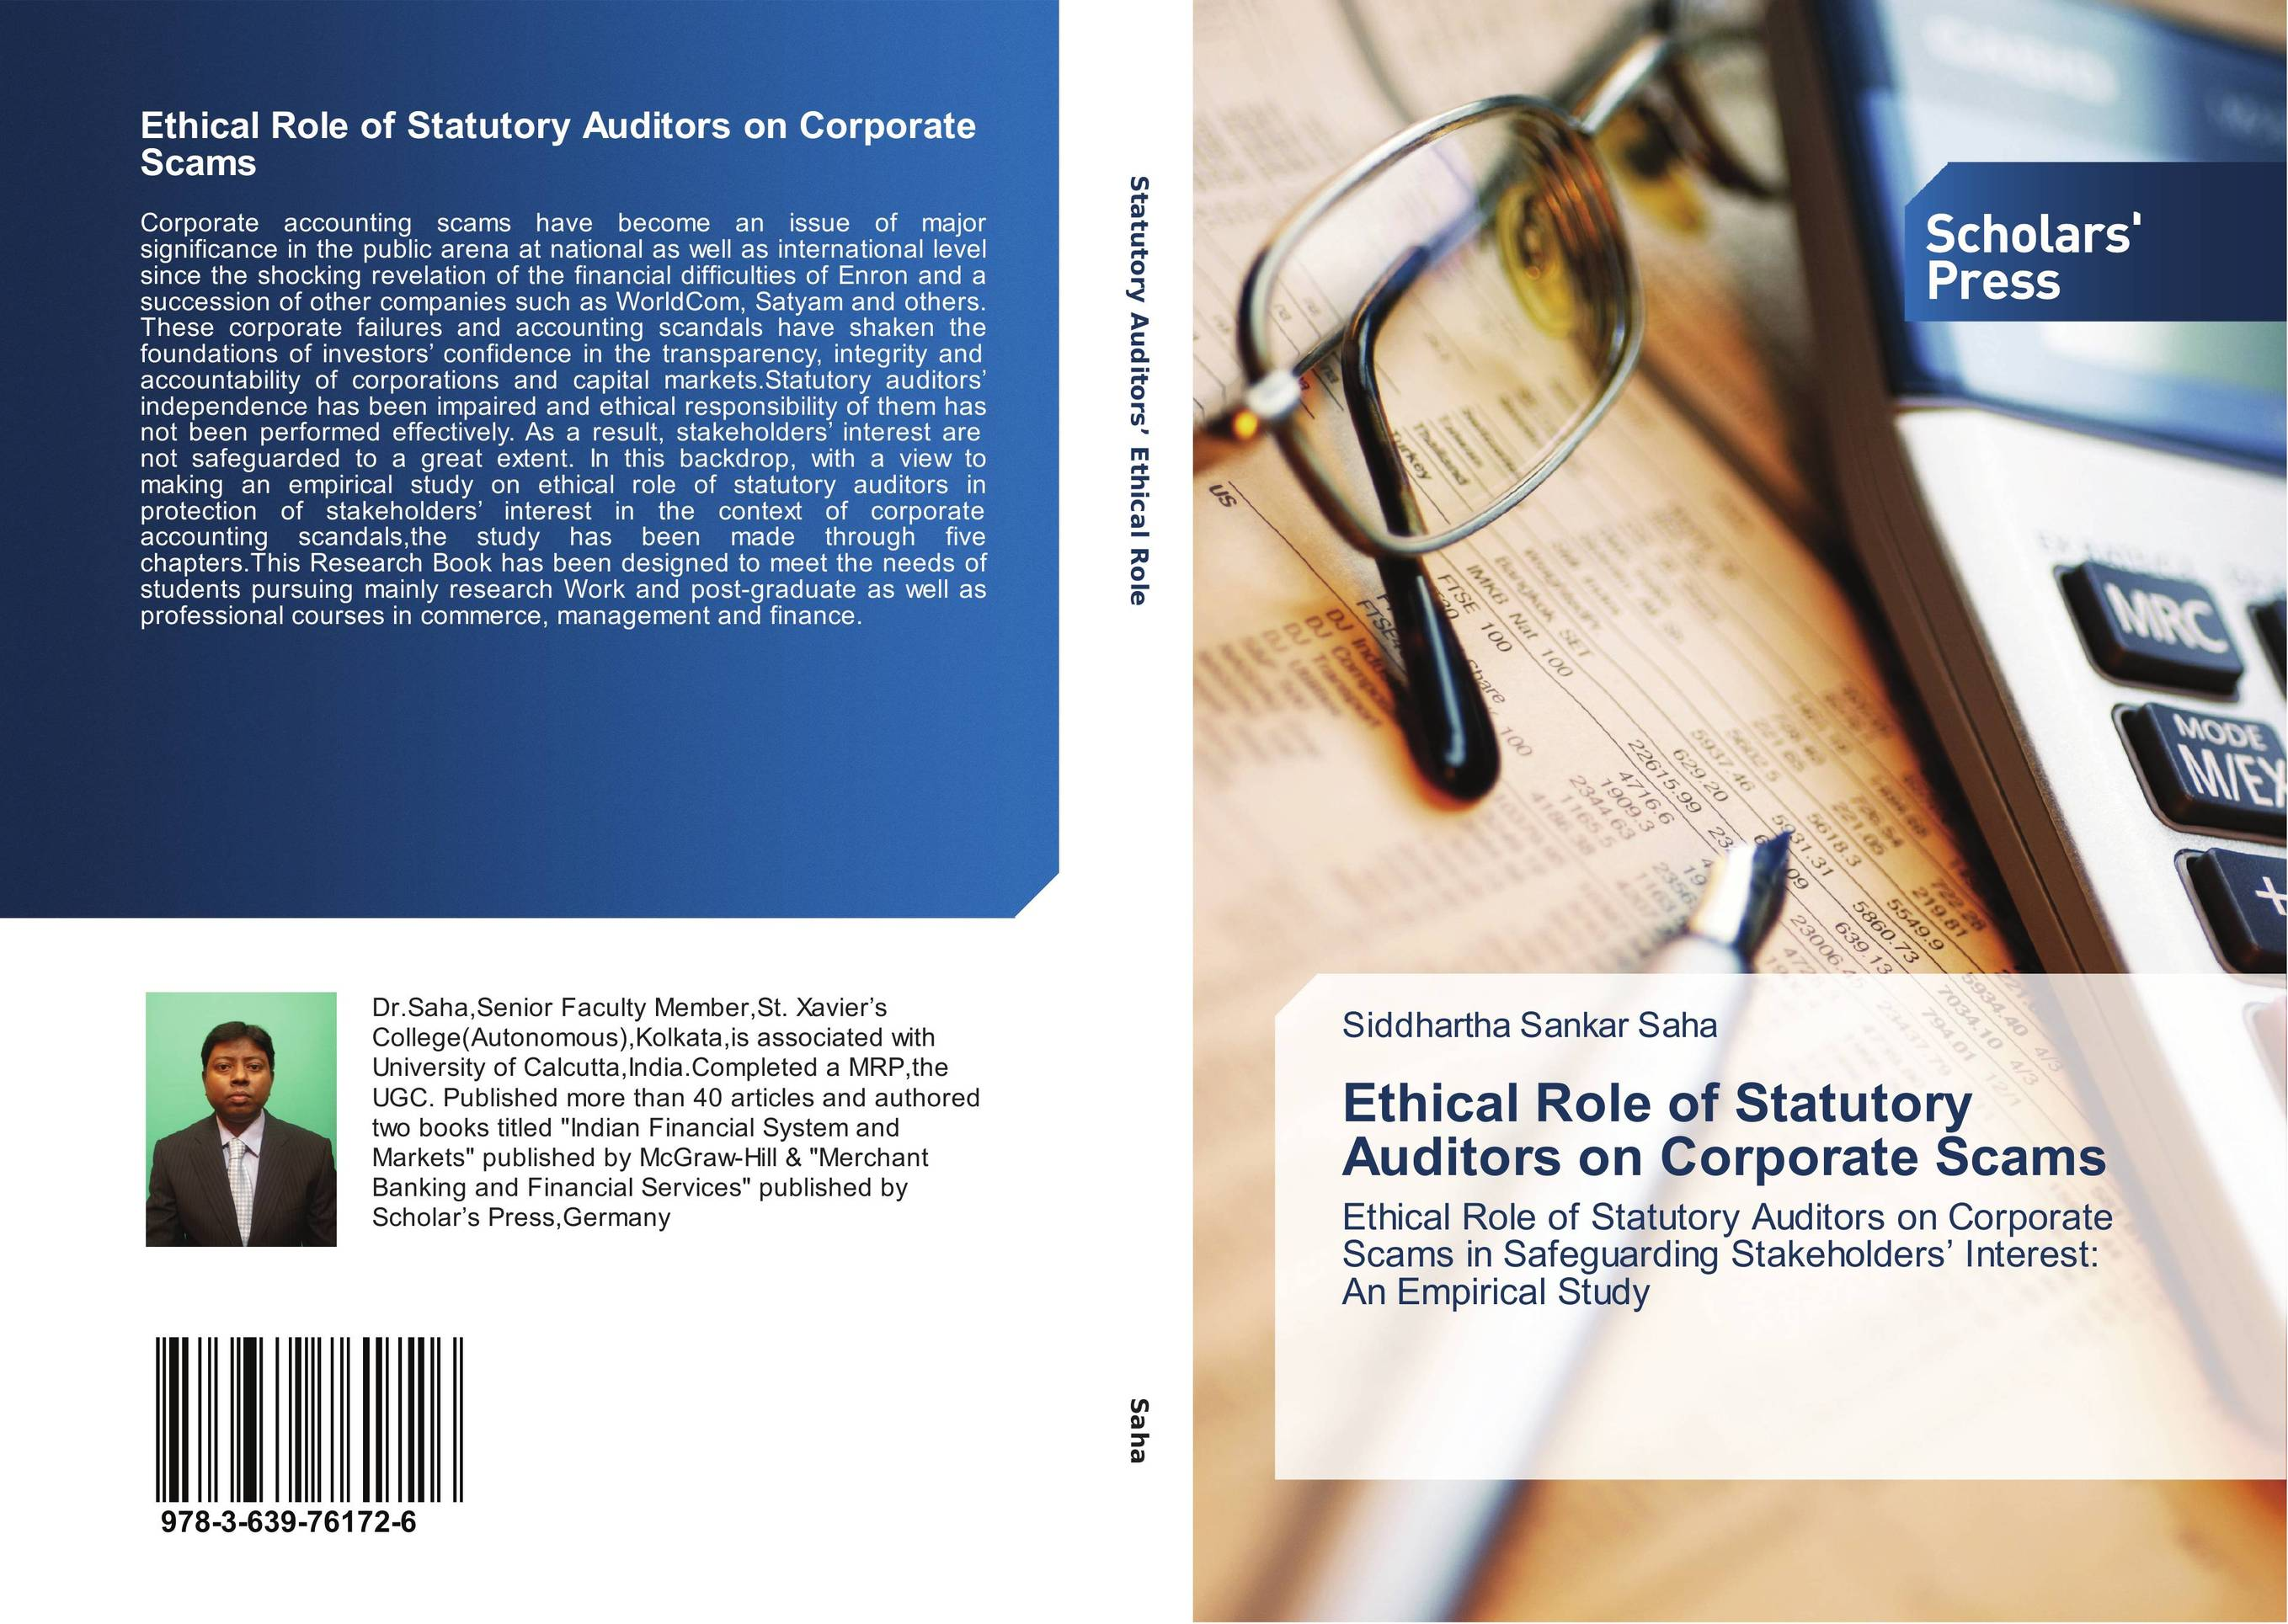 ethics and the roles of the sales managers In addition to following the organization's ethical code, managers may be obligated to follow a separate professional code of ethics, depending on their role, responsibilities, and training fiduciary duty is an example that applies to some managerial roles.